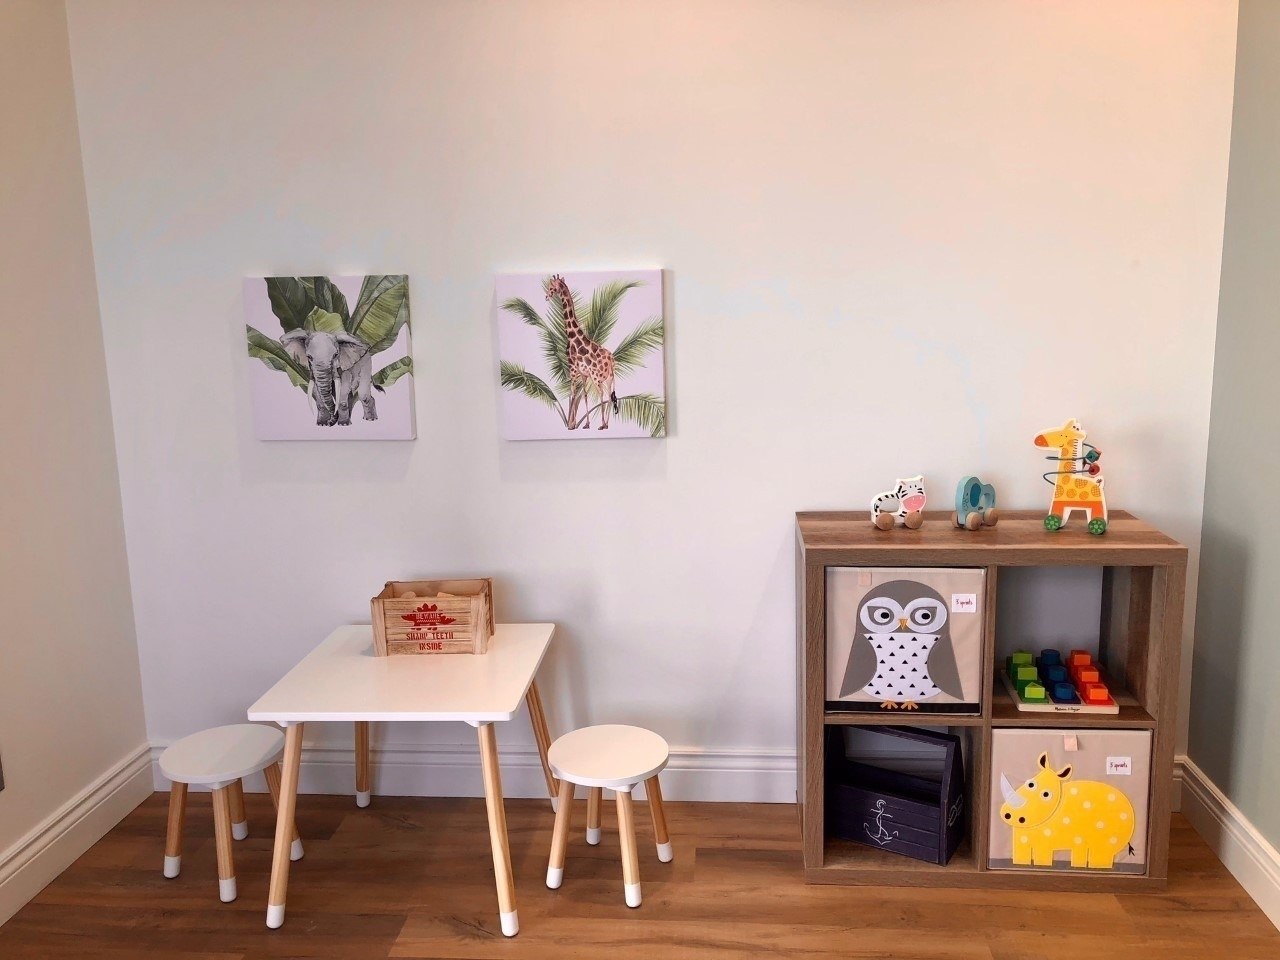 Northwest Dentistry (Dr. Karen Mclean) in Charlottetown: This is our Kid Zone for your children to play and wait for Dr. Mclean